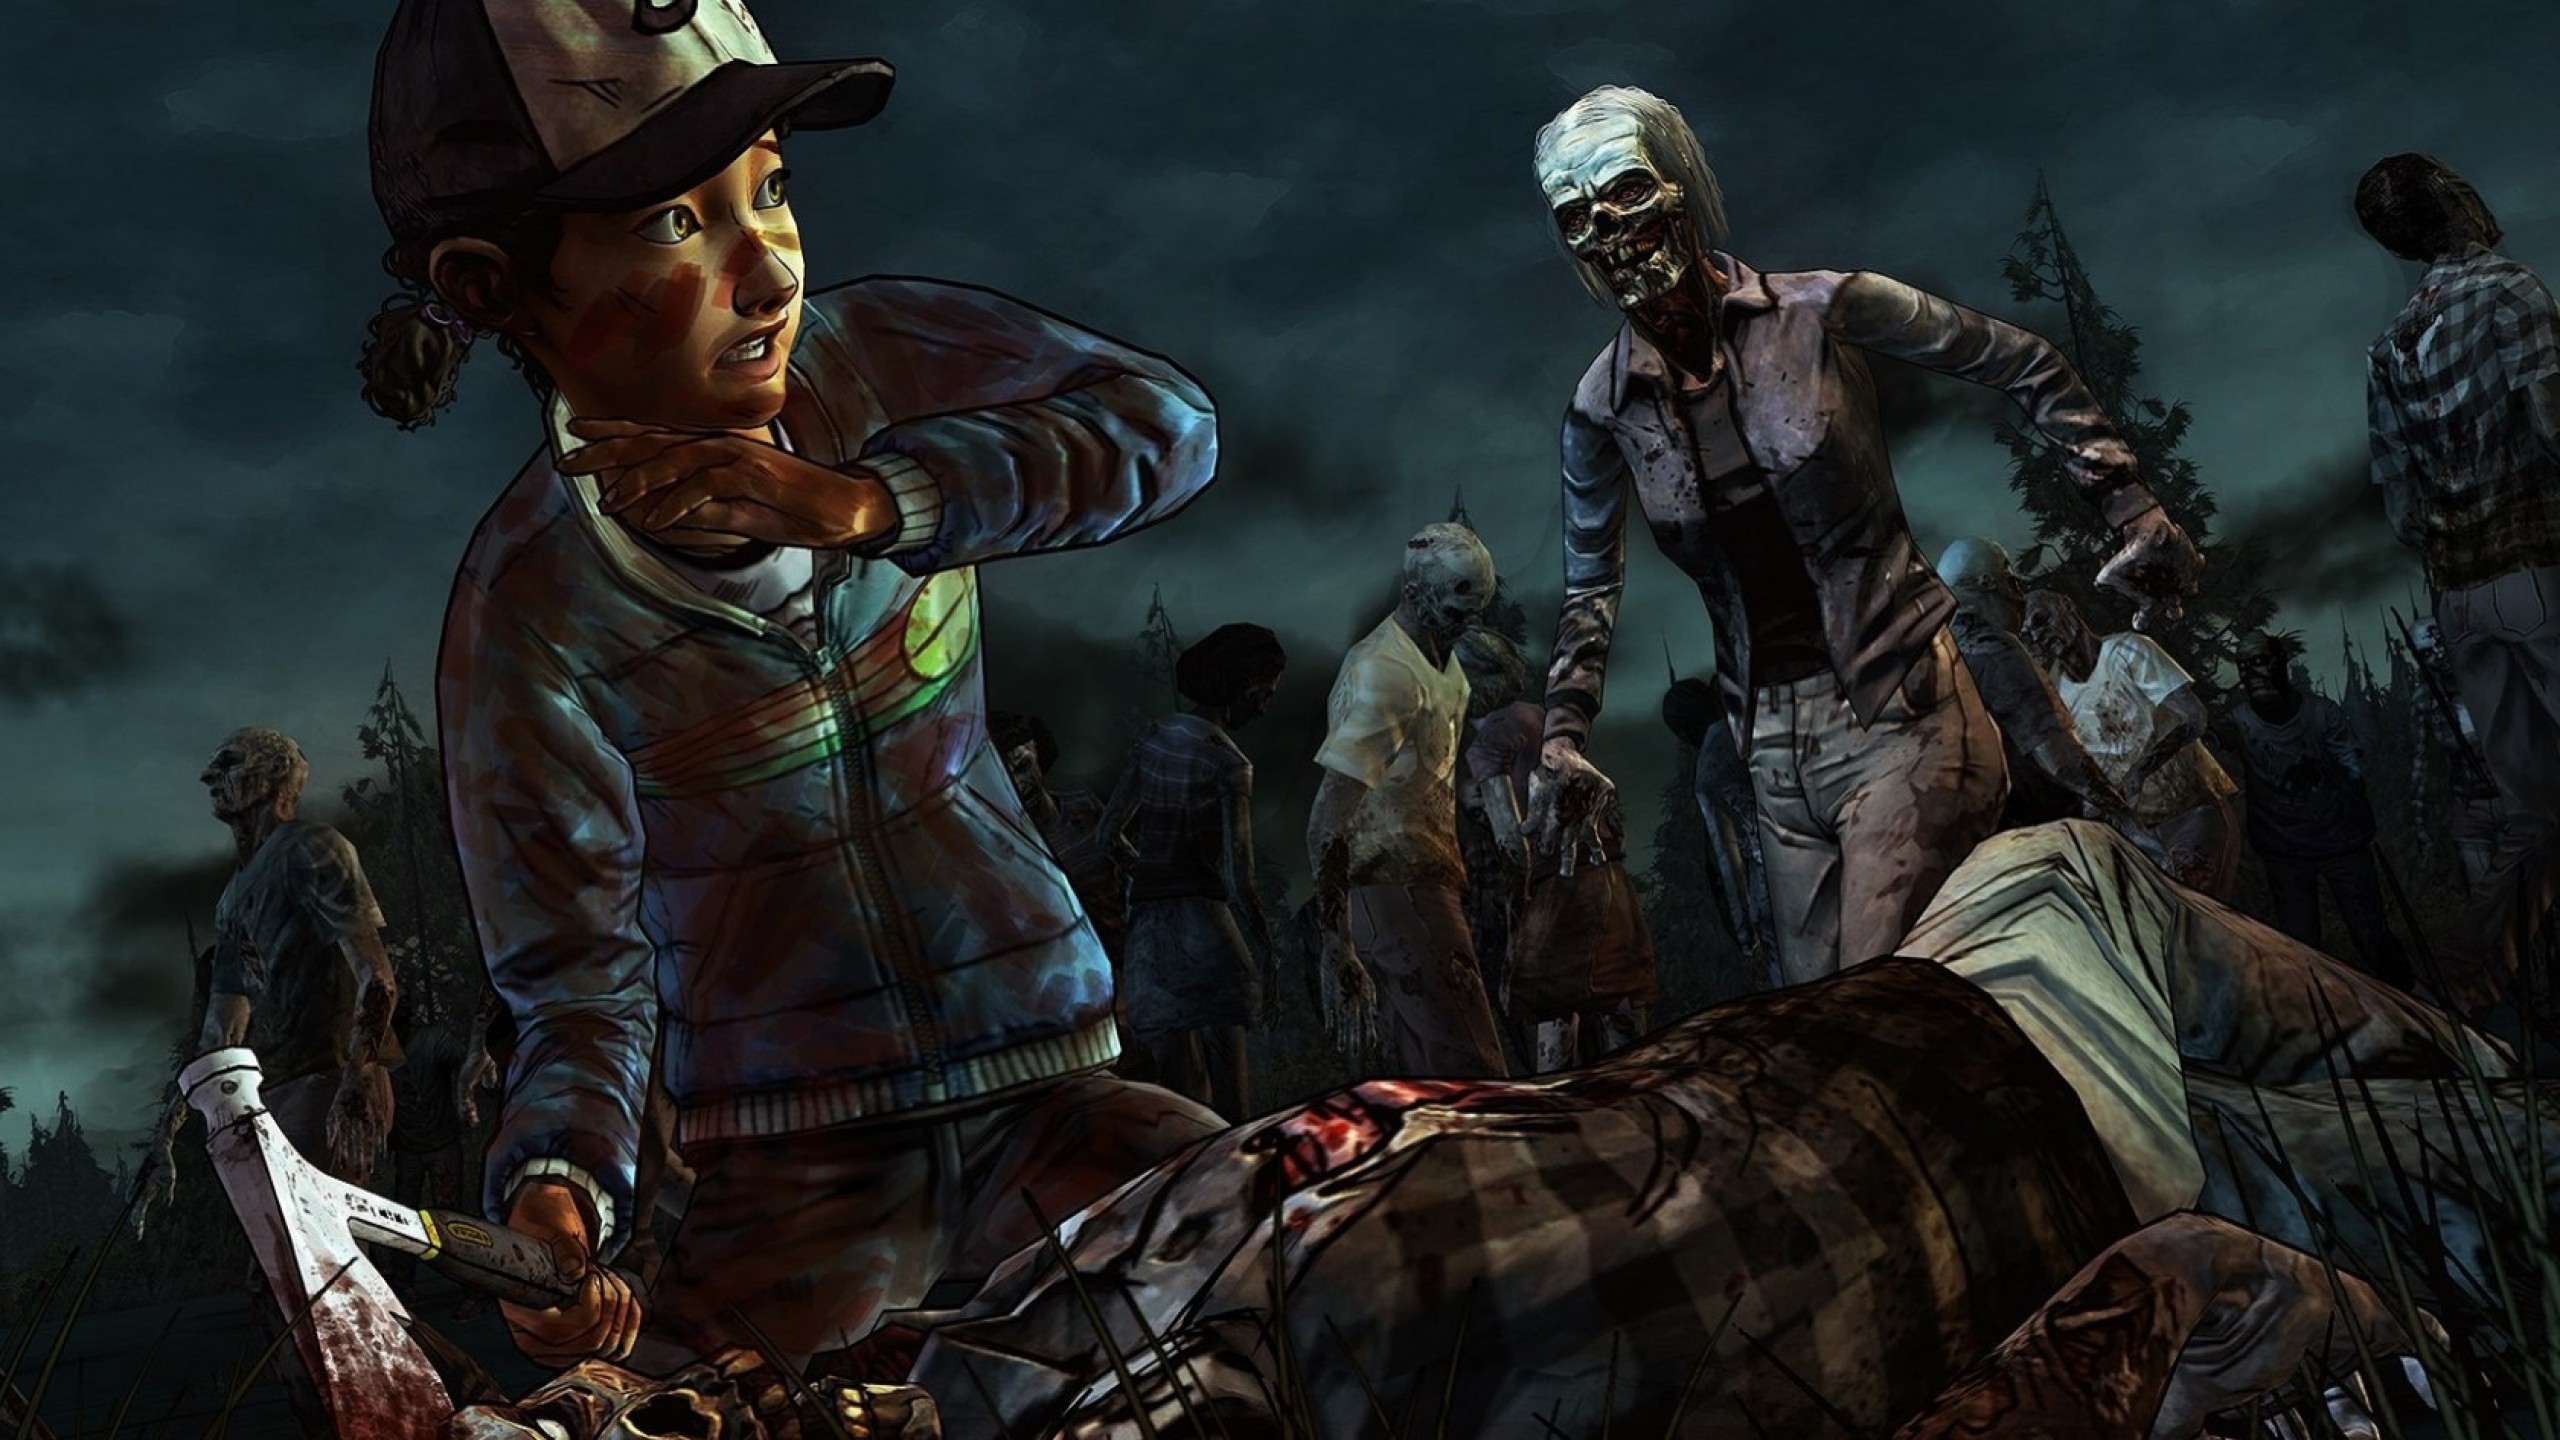 2560x1440  Wallpaper the walking dead a telltale games series, the walking  dead, art,